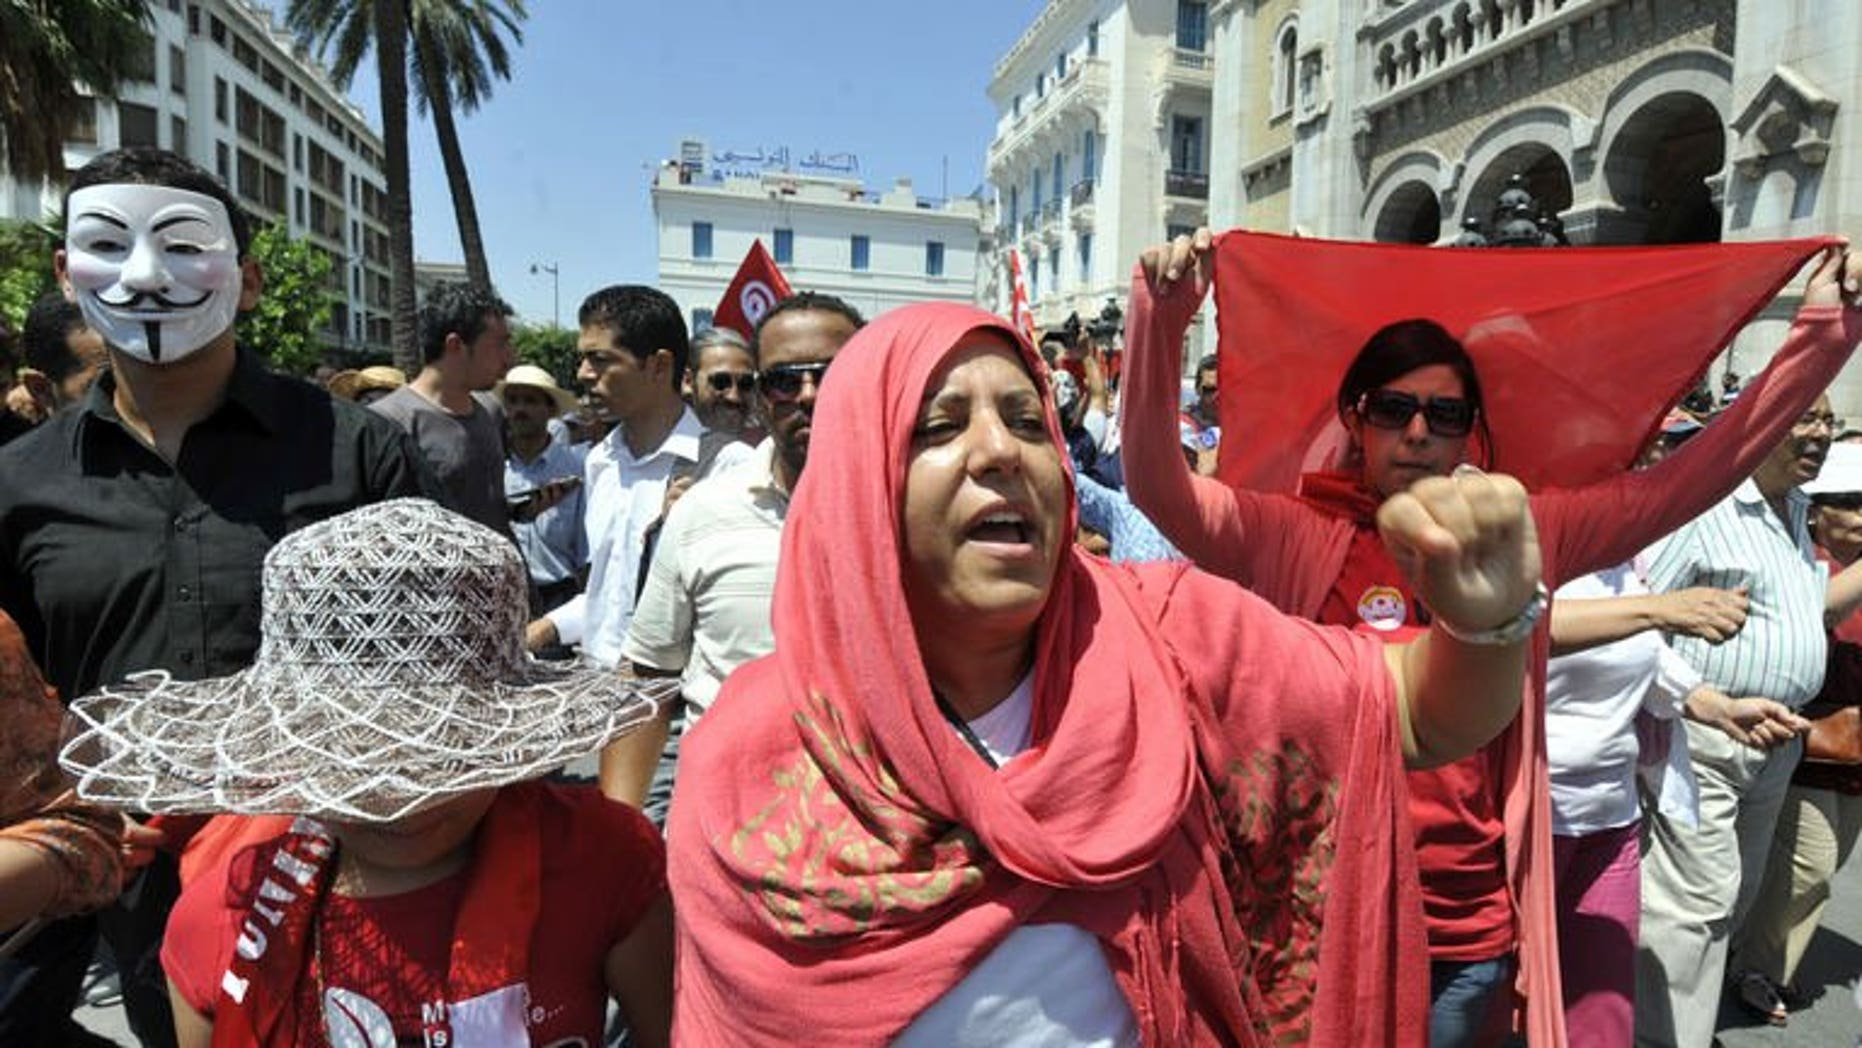 Tunisian protesters stage an anti-government demonstration on the Habib Bourguiba Avenue on July 26, 2013 in Tunis after the killing of the opposition politician Mohamed Brahmi. A bomb wounded a policeman in a car park outside a police post in the port on Saturday, a witness and two radio stations said.